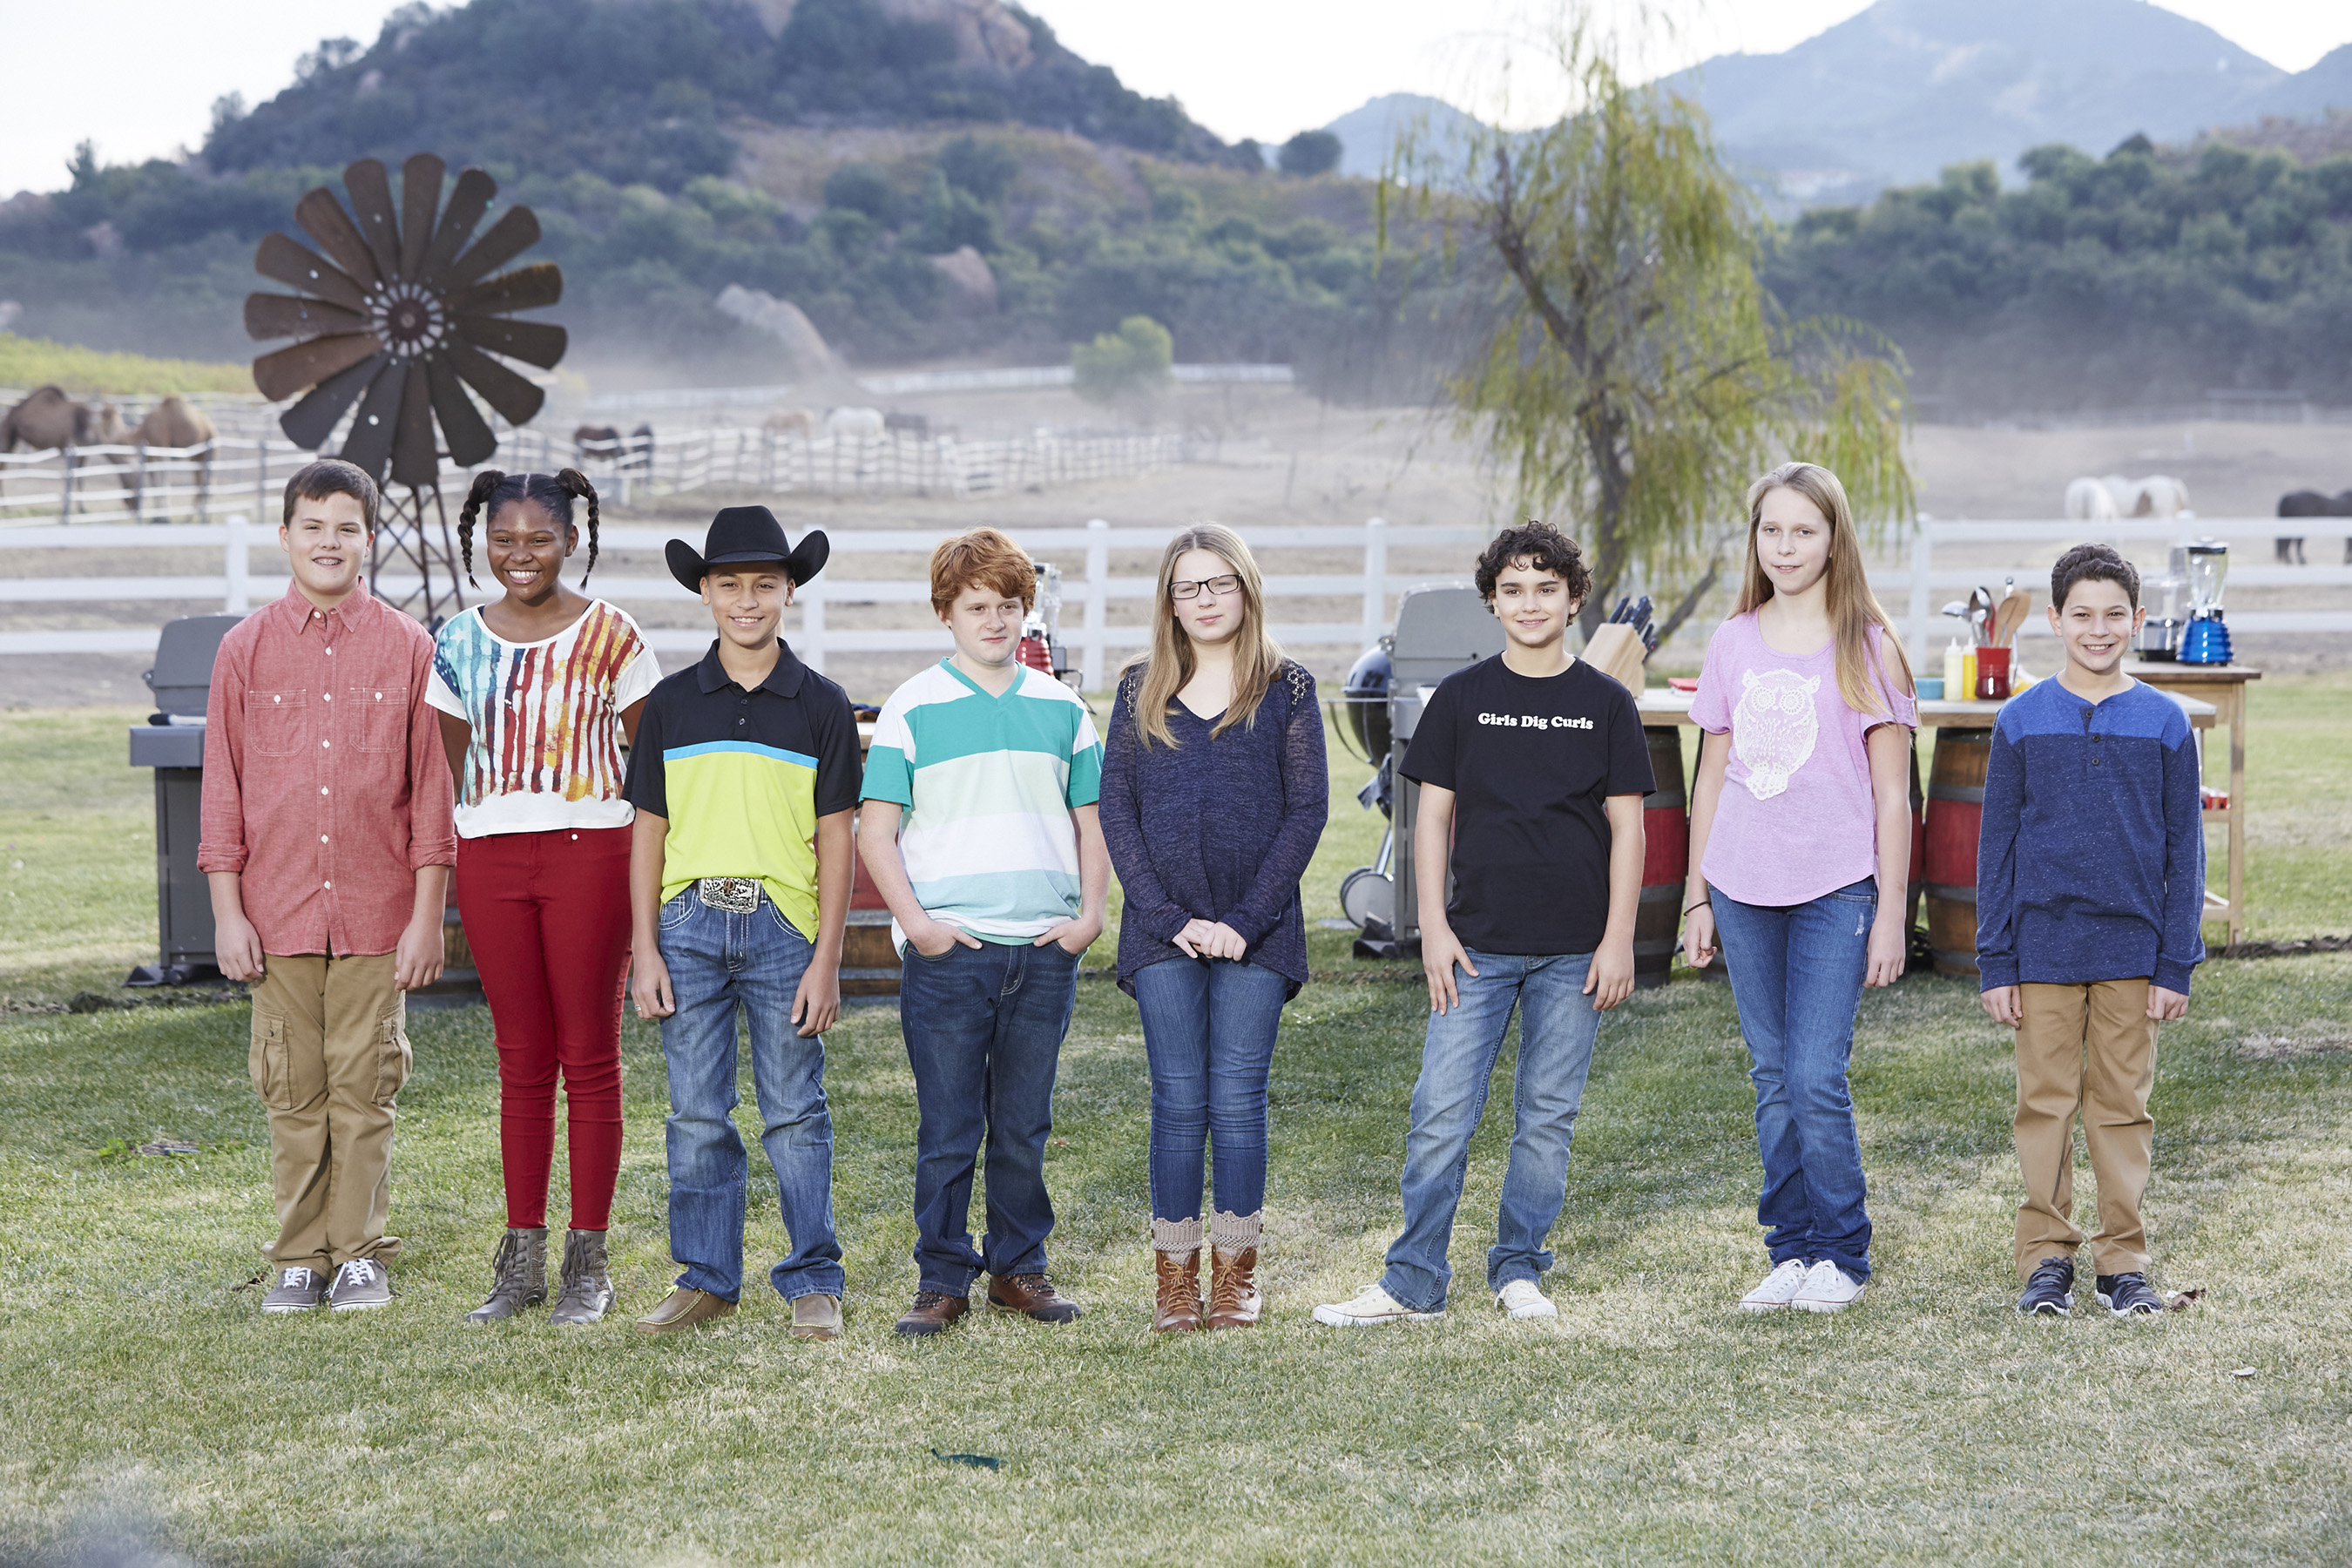 From left, competitors Carter Hull, Paris Hale, Ty Machado, Jacob Scott, Sydney Groves, LJ Ruth, Josie Burkhardt and Tyler Zager on Food Network's Kids BBQ Challenge